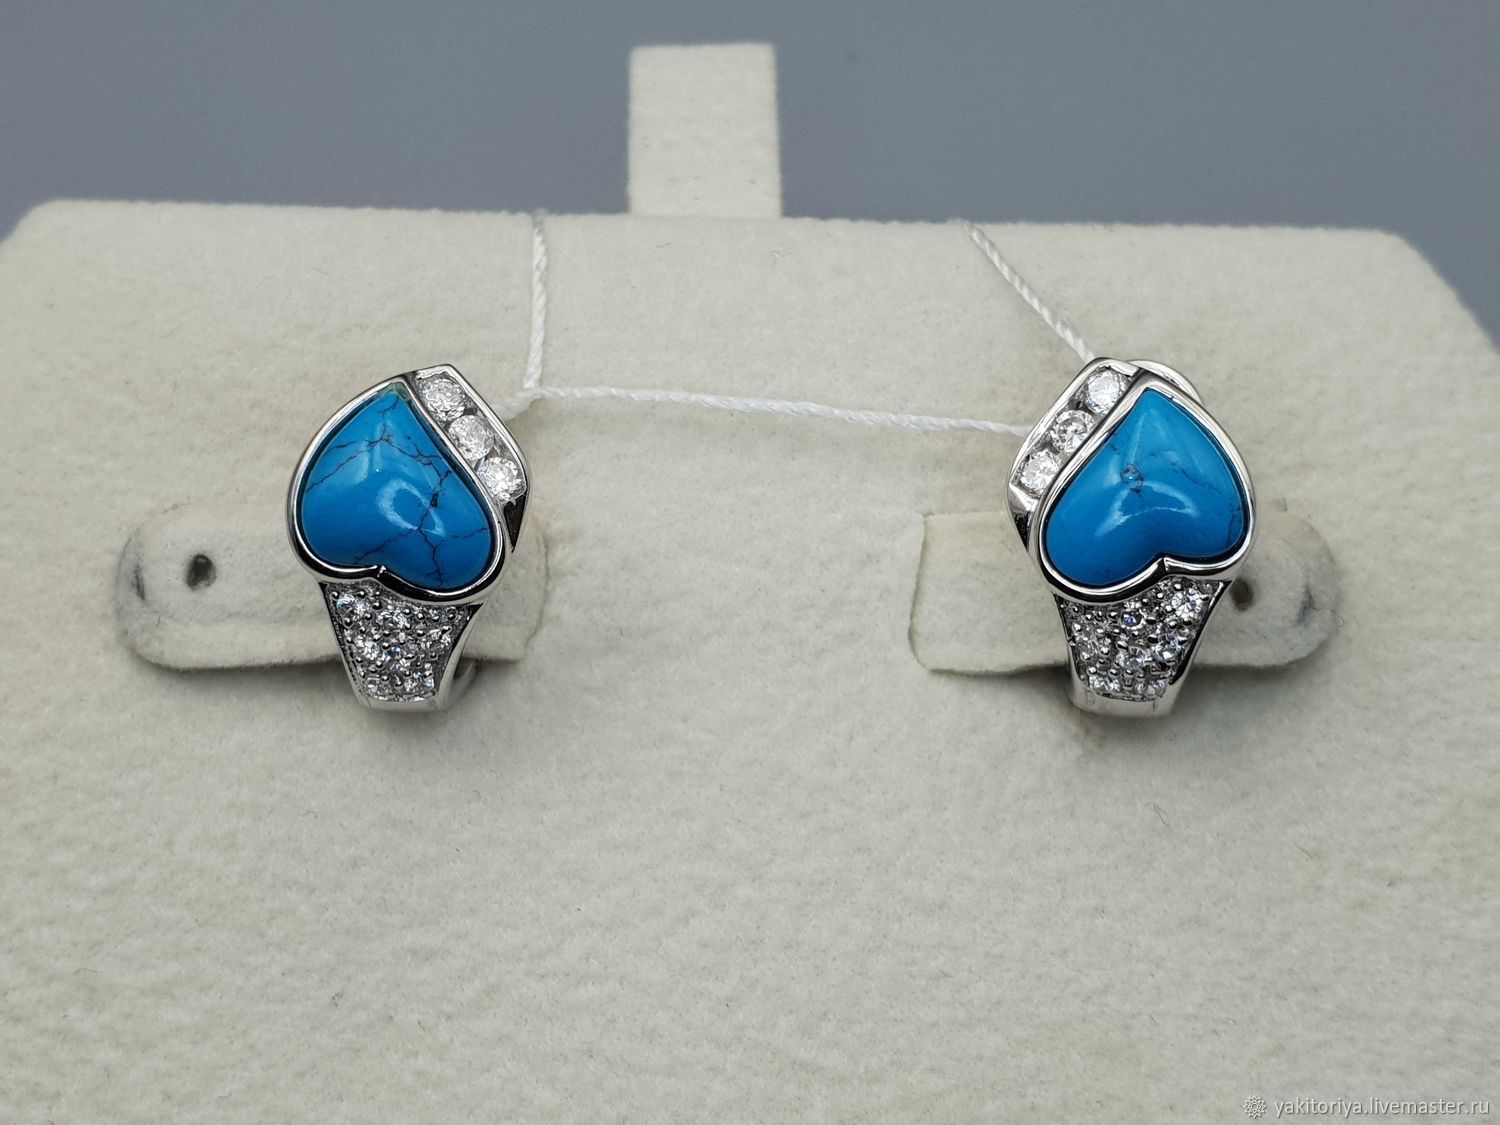 Silver earrings with turquoise 8h8 mm and cubic zirconia, Earrings, Moscow,  Фото №1